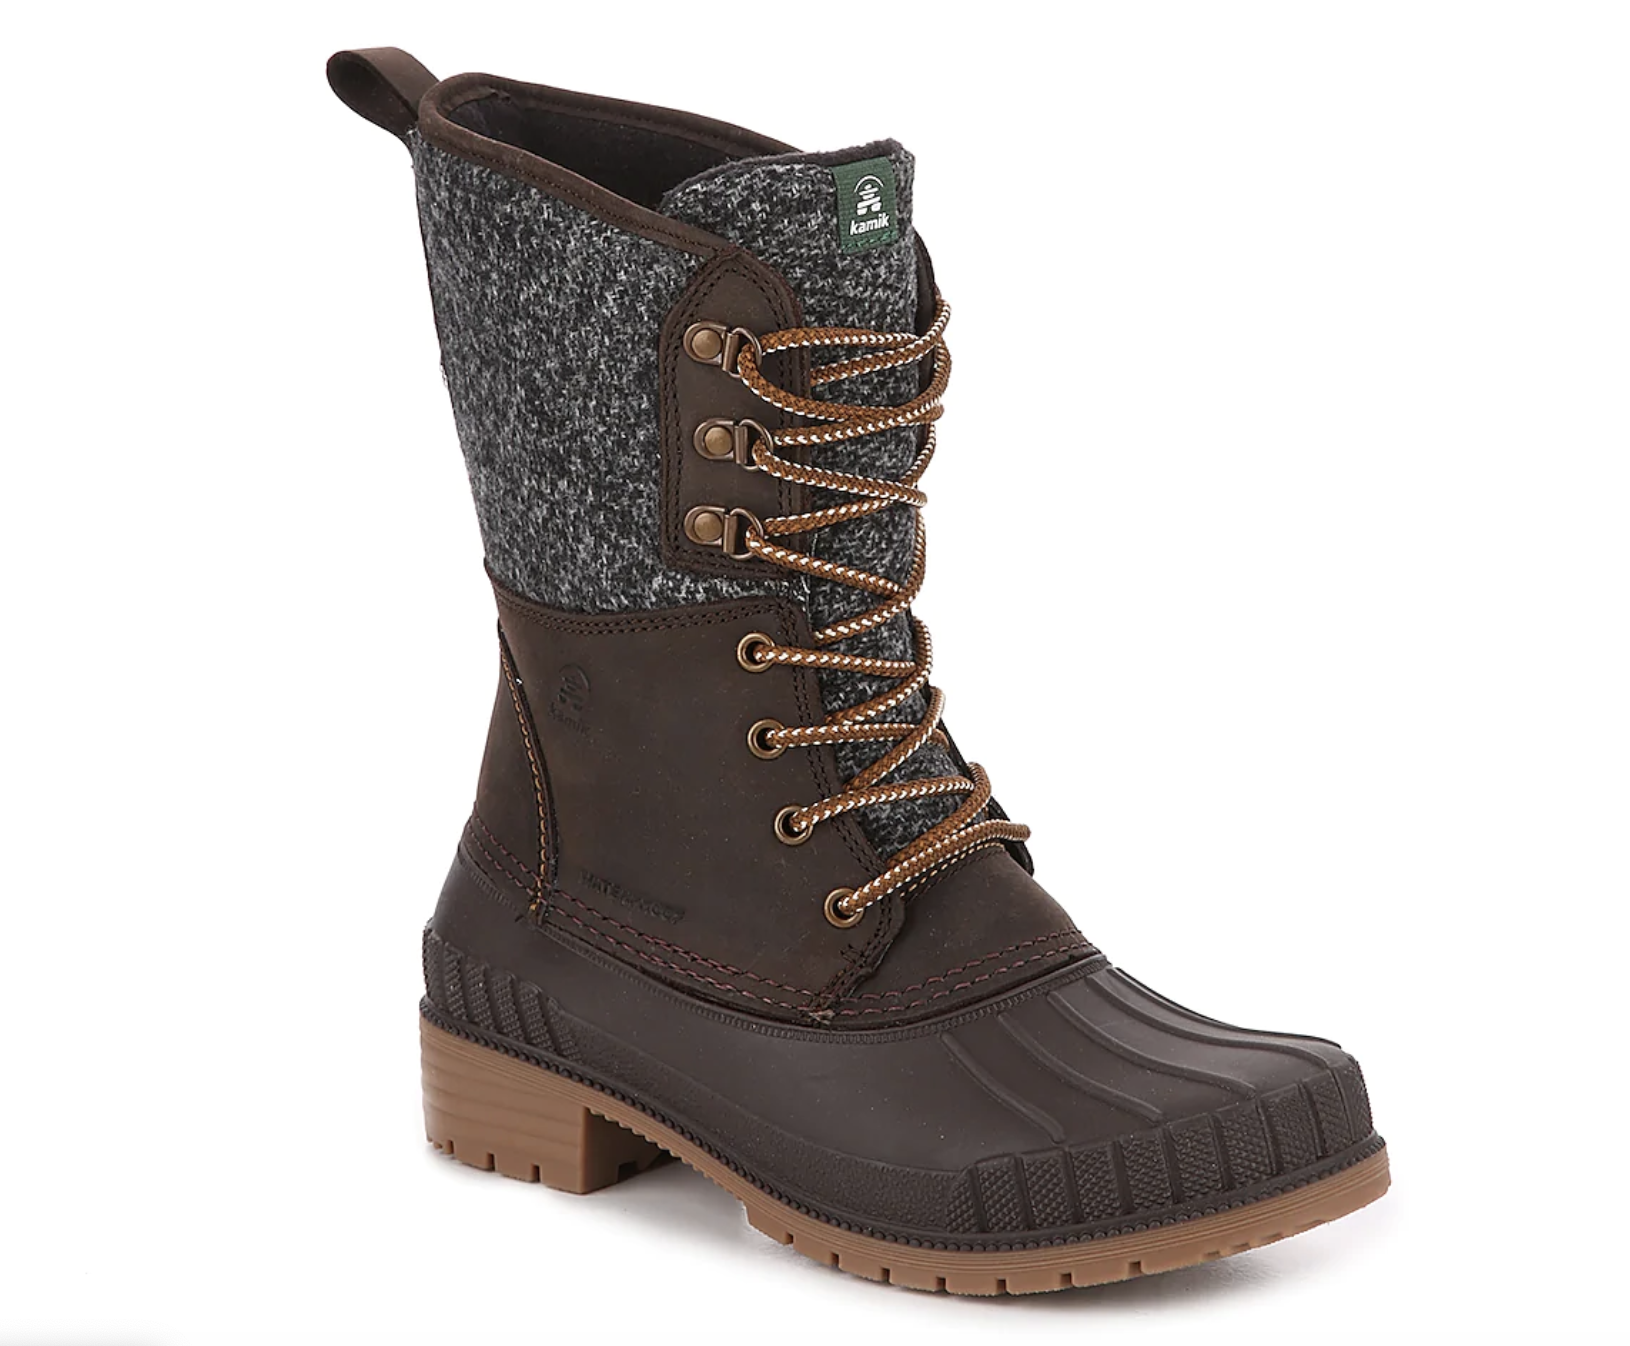 dsw winter boots, best winter boots for women